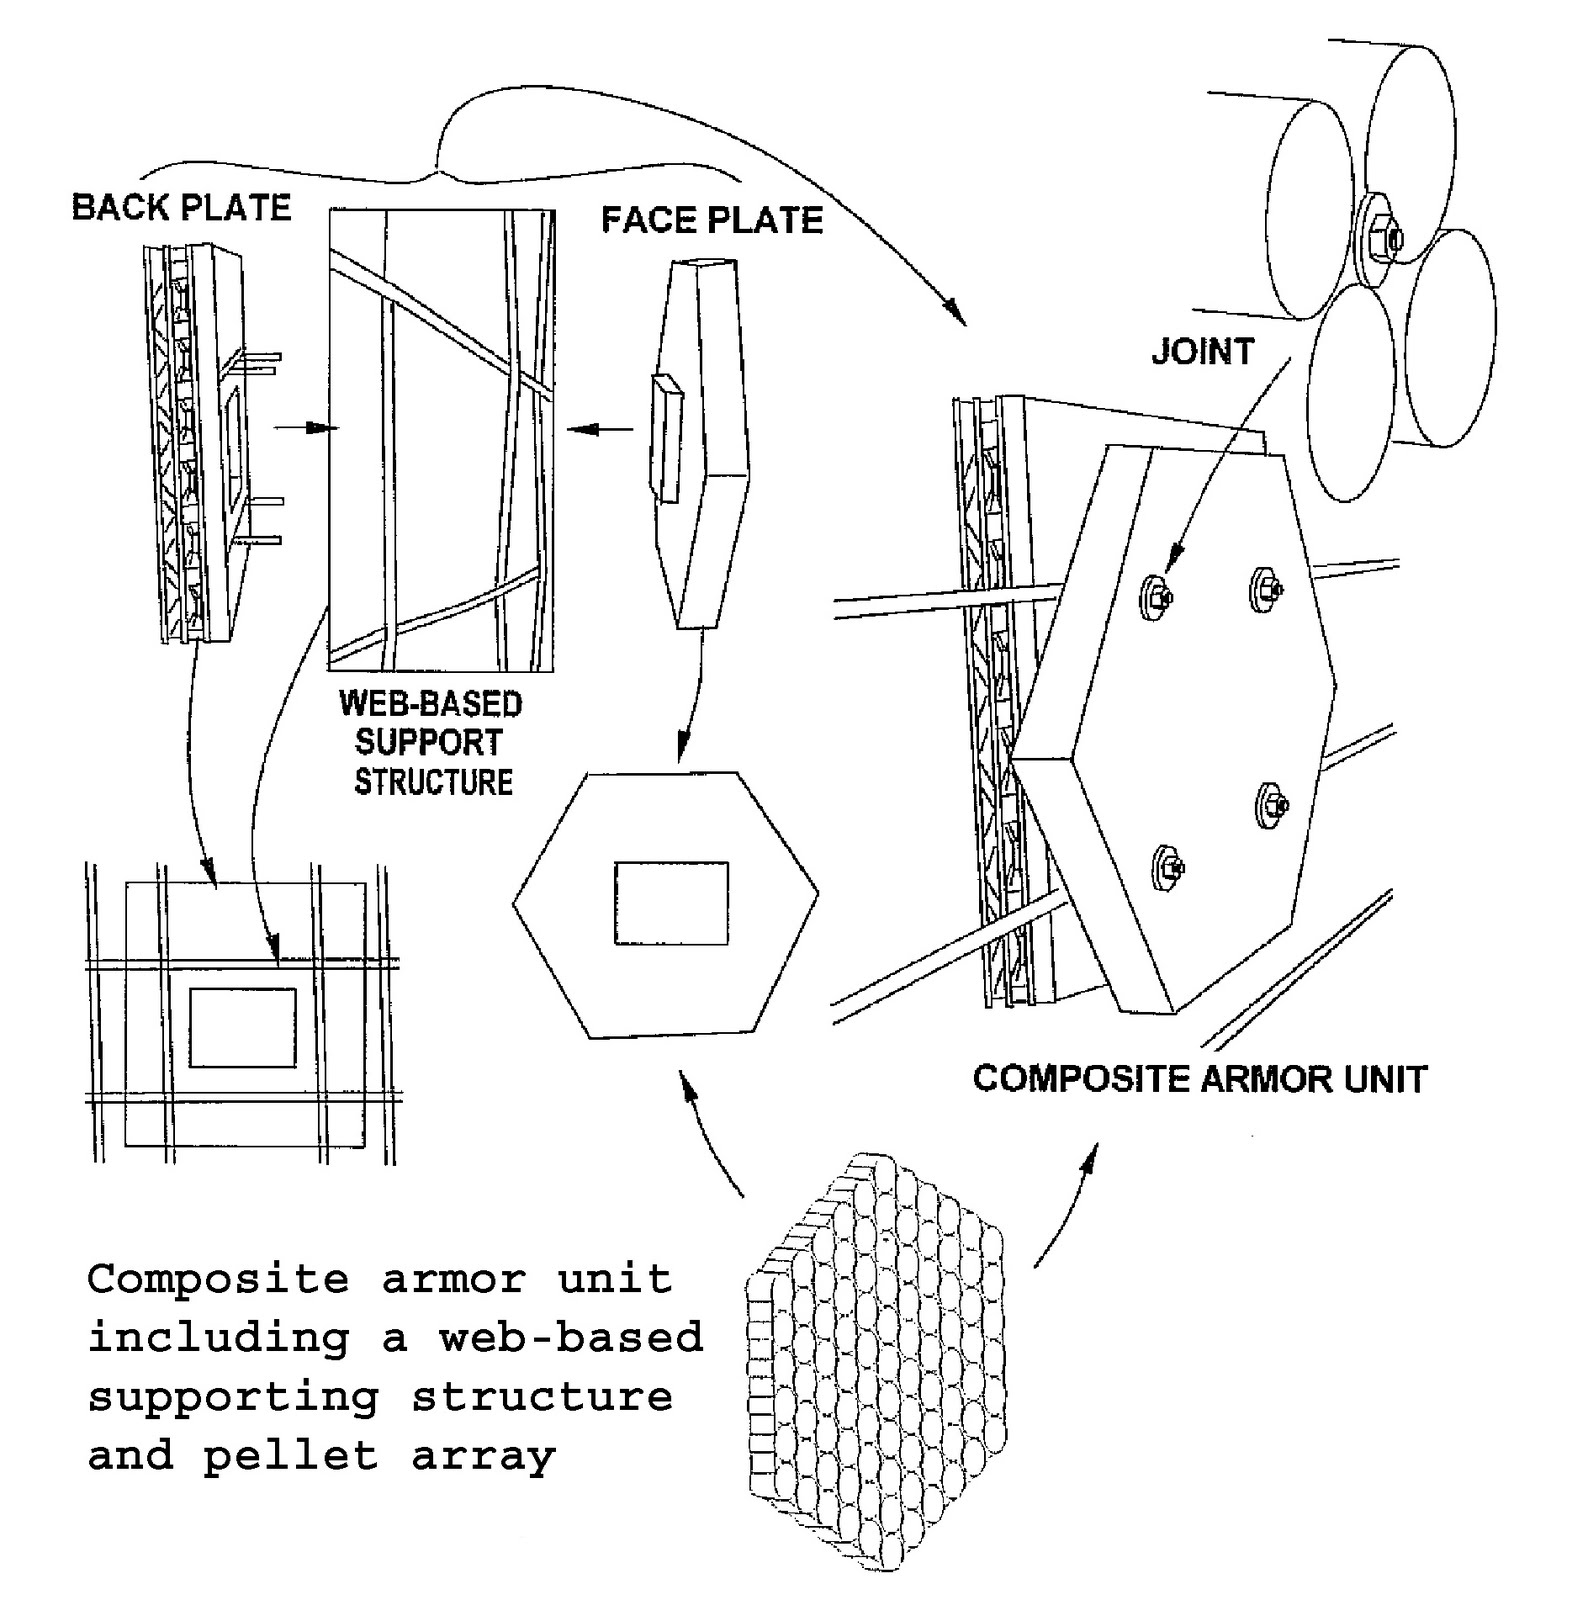 nano clay used to form lightweight composite ballistic armor the fabric net is designed to hold the armor tiles ceramic layer and back plate in place and form an integrated armor kit that can fill into various